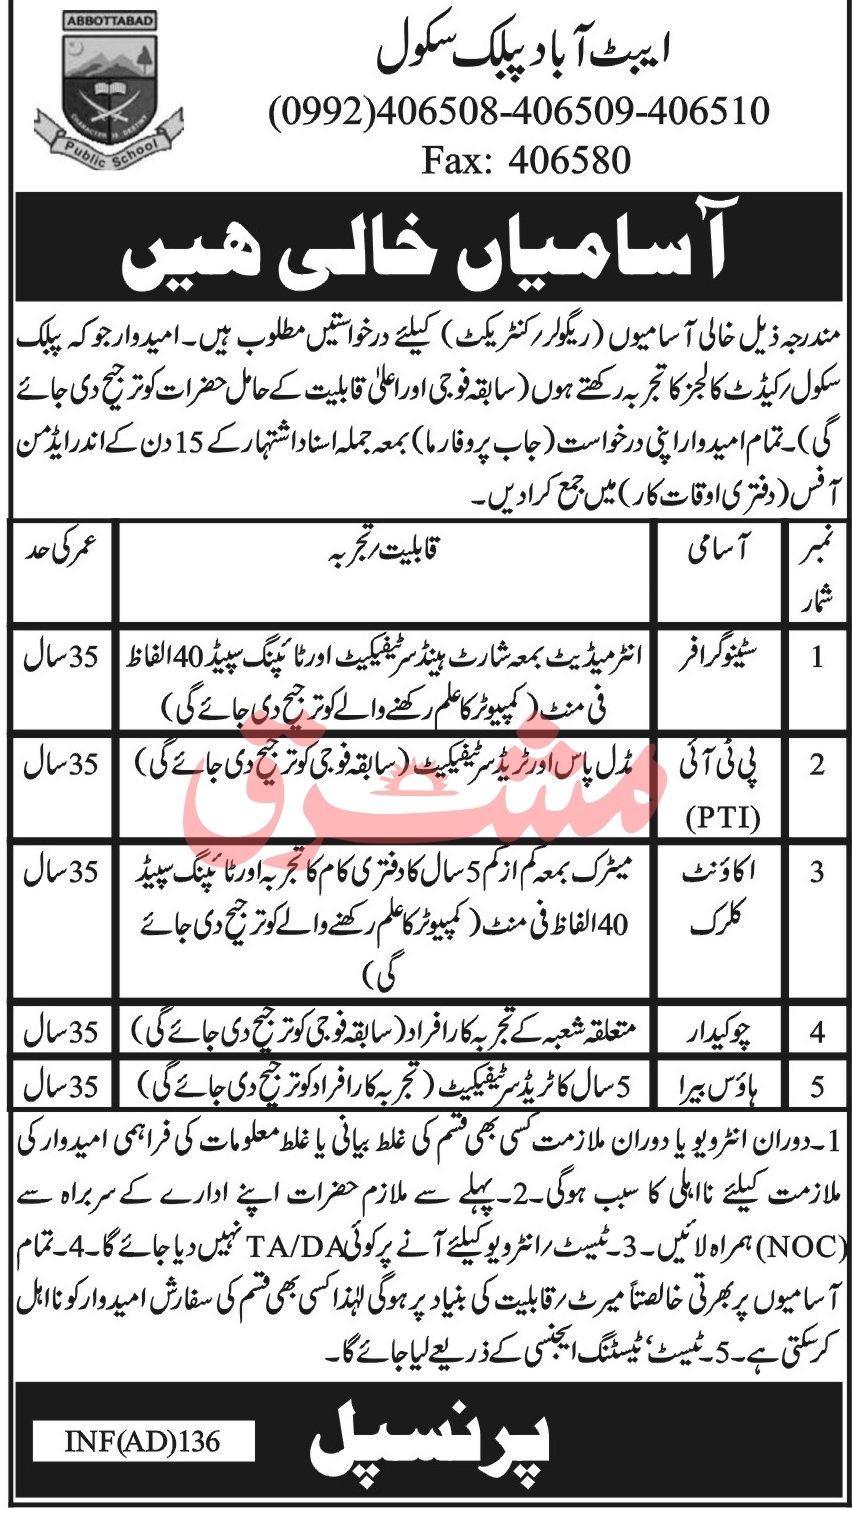 Abbottabad Public School Jobs September 2020